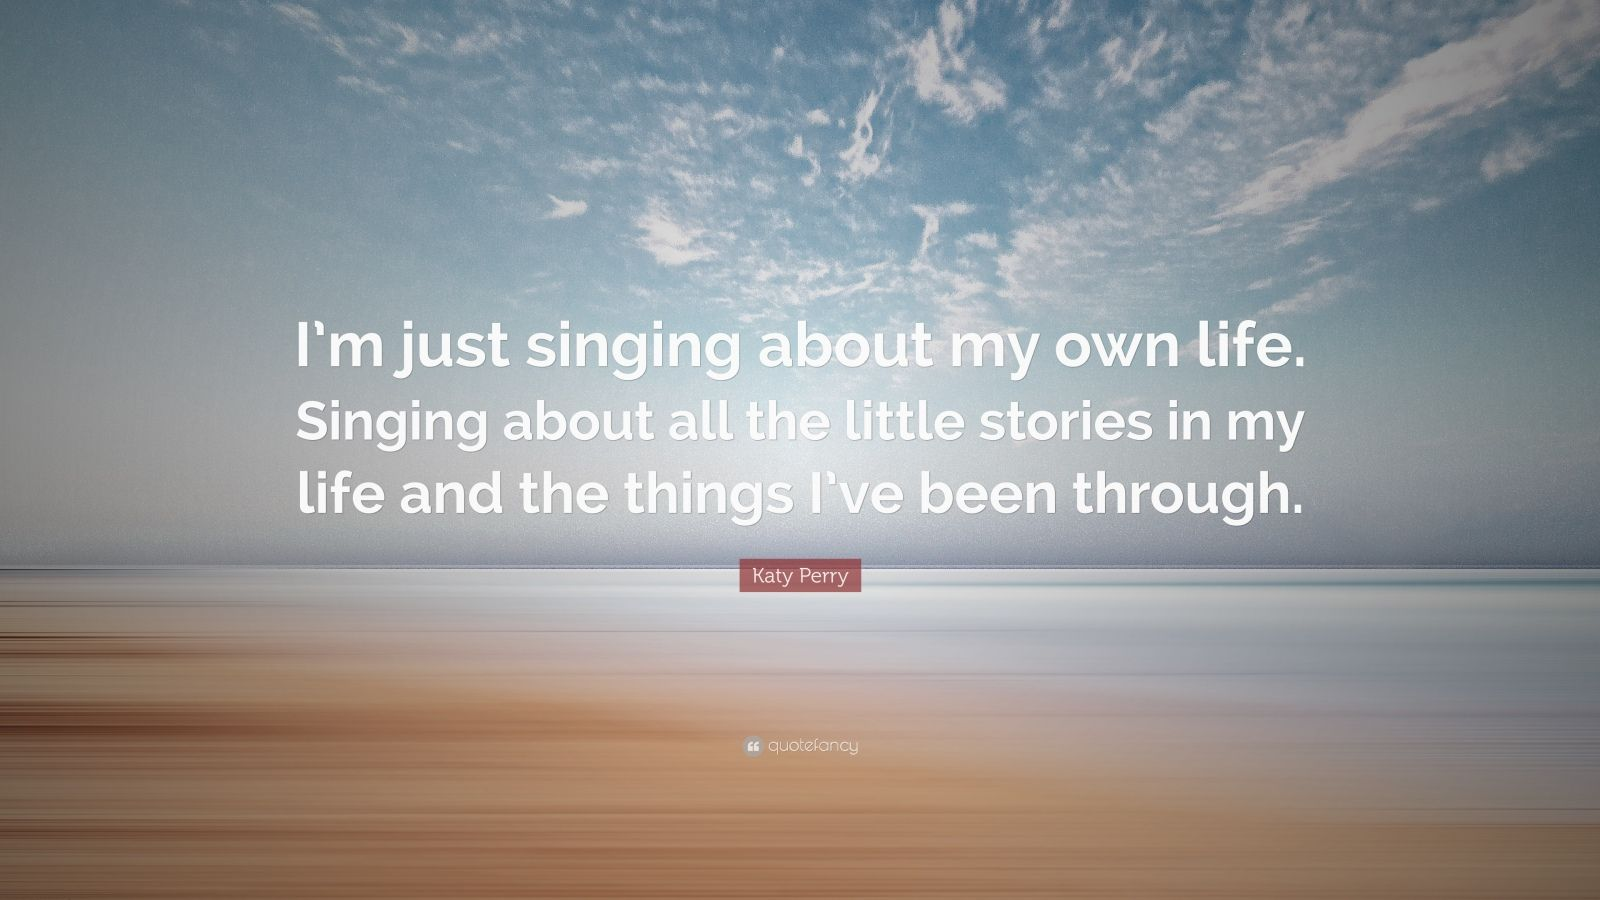 """Katy Perry Quote: """"I'm just singing about my own life. Singing about all the little stories in my life and the things I've been through."""""""